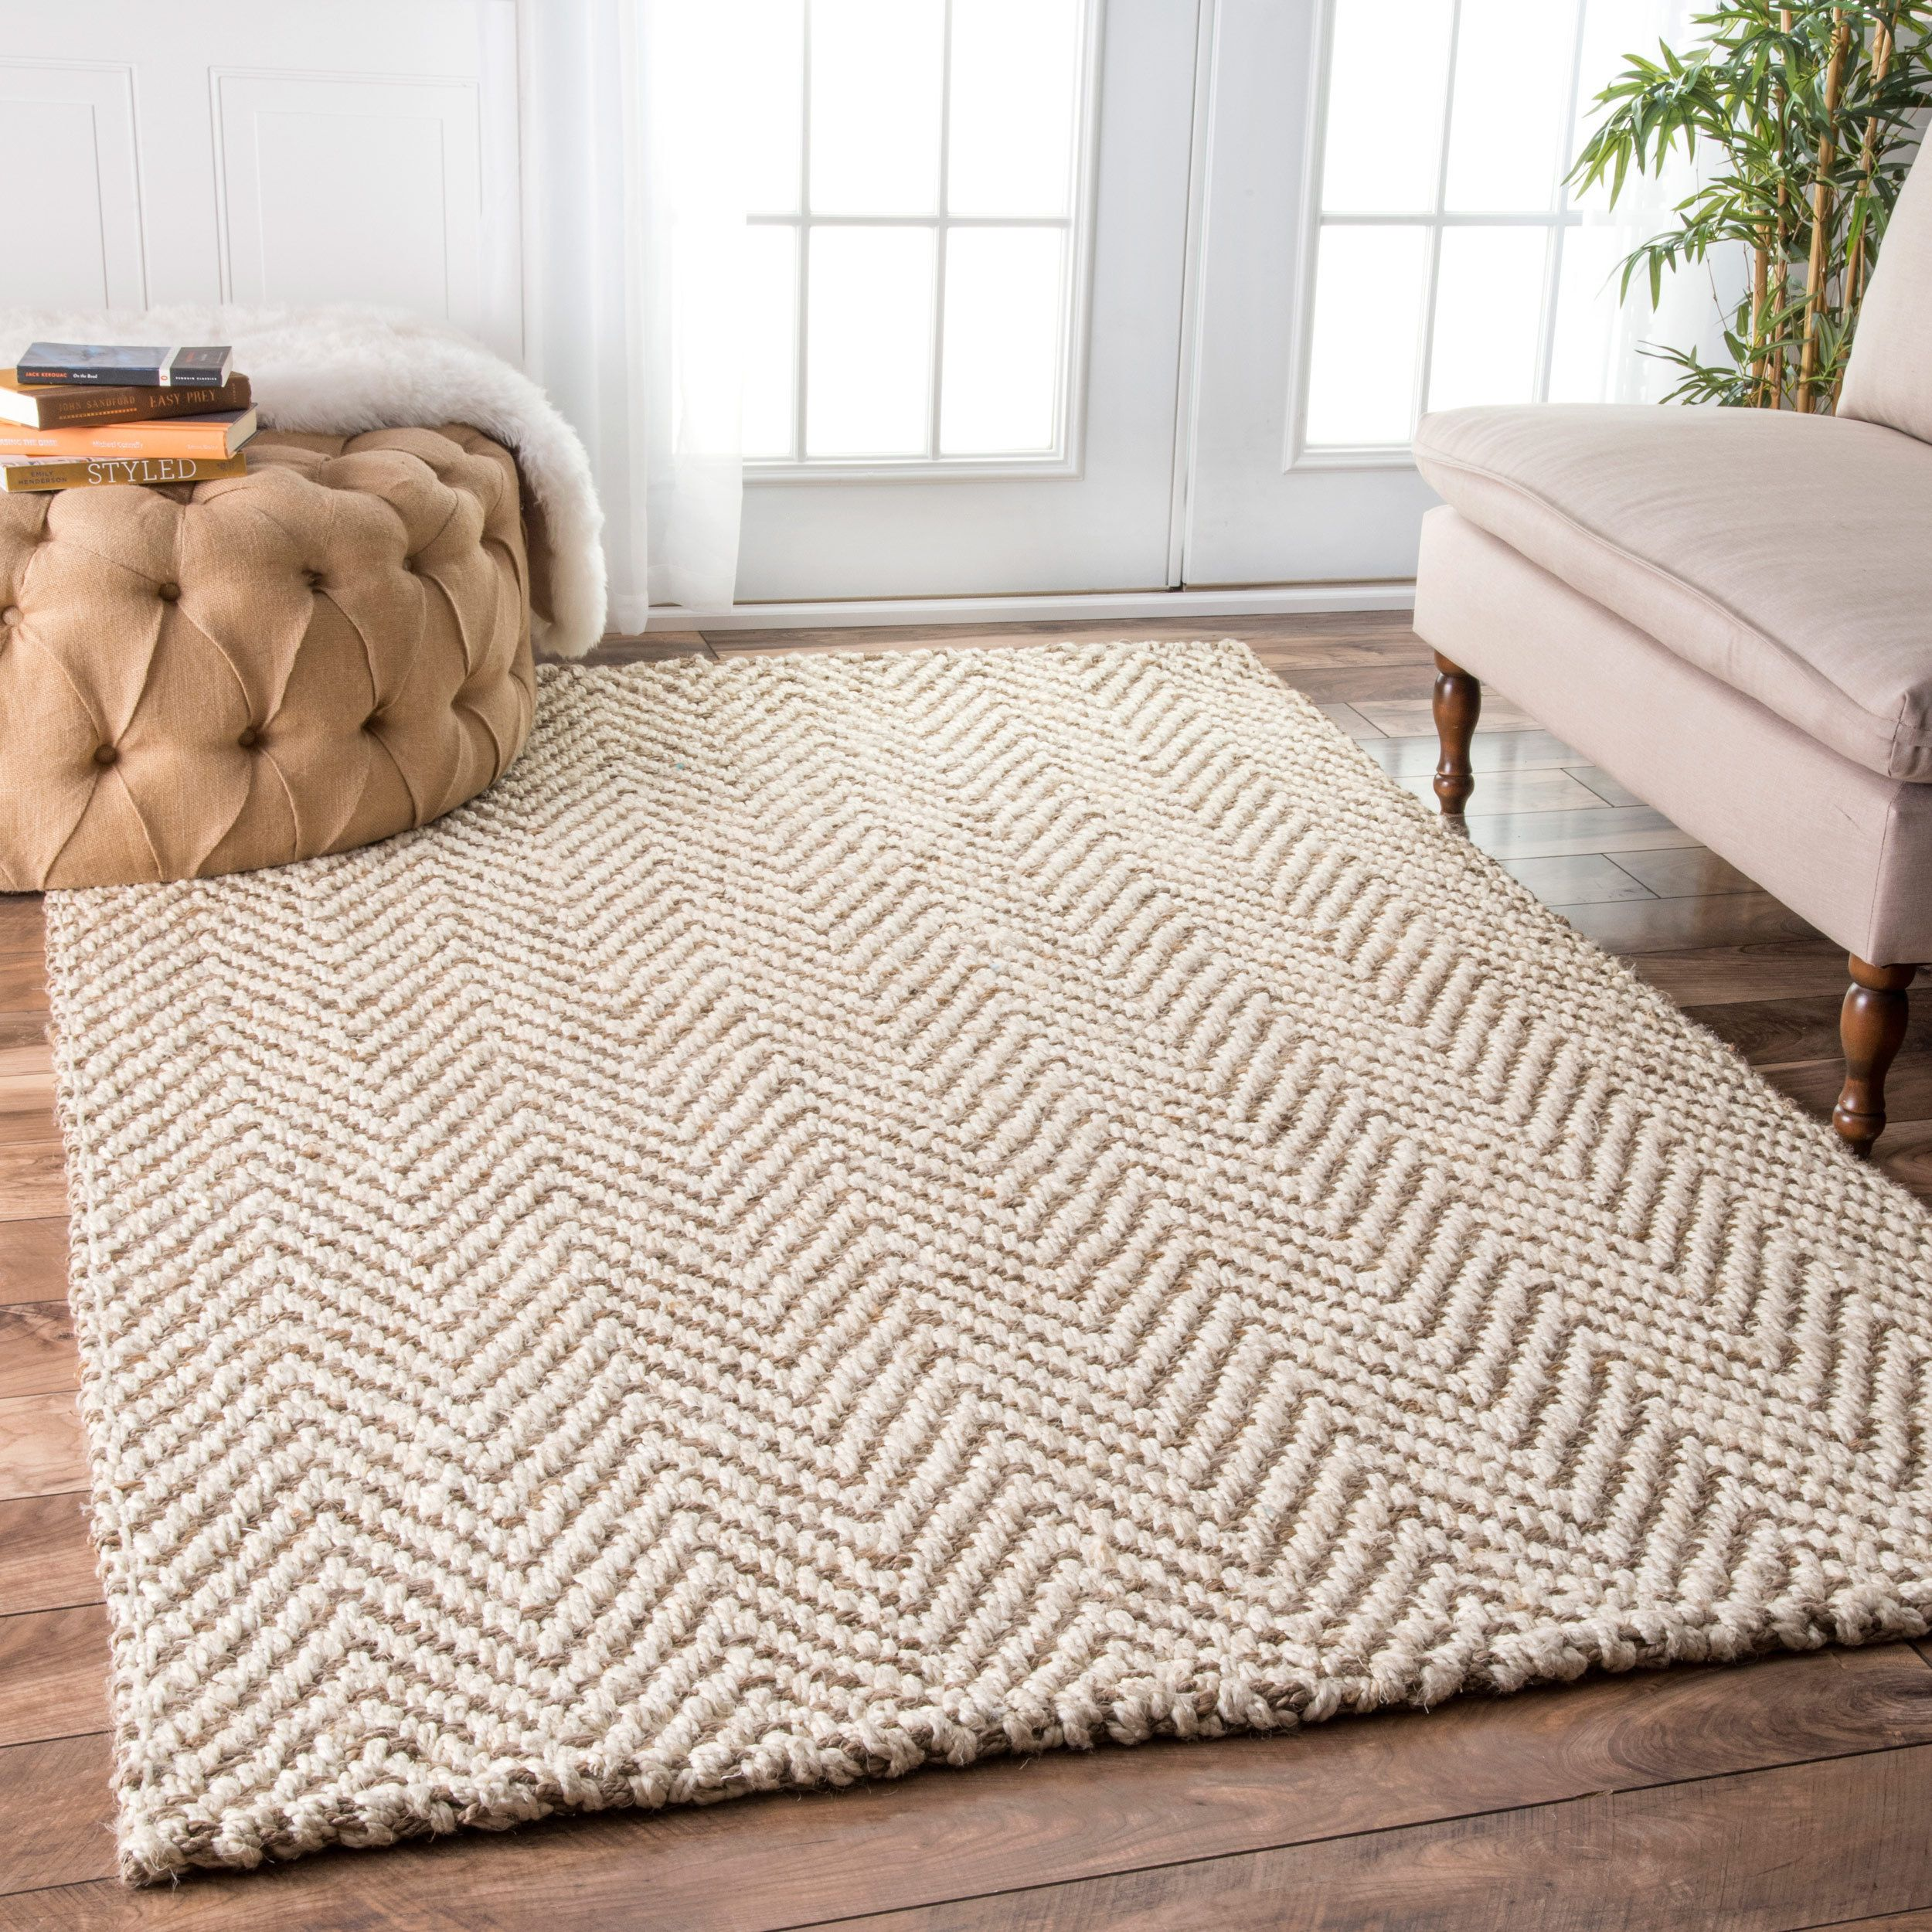 dp safavieh collection soft dining com amazon rugs kitchen natural fiber area sisal rug x